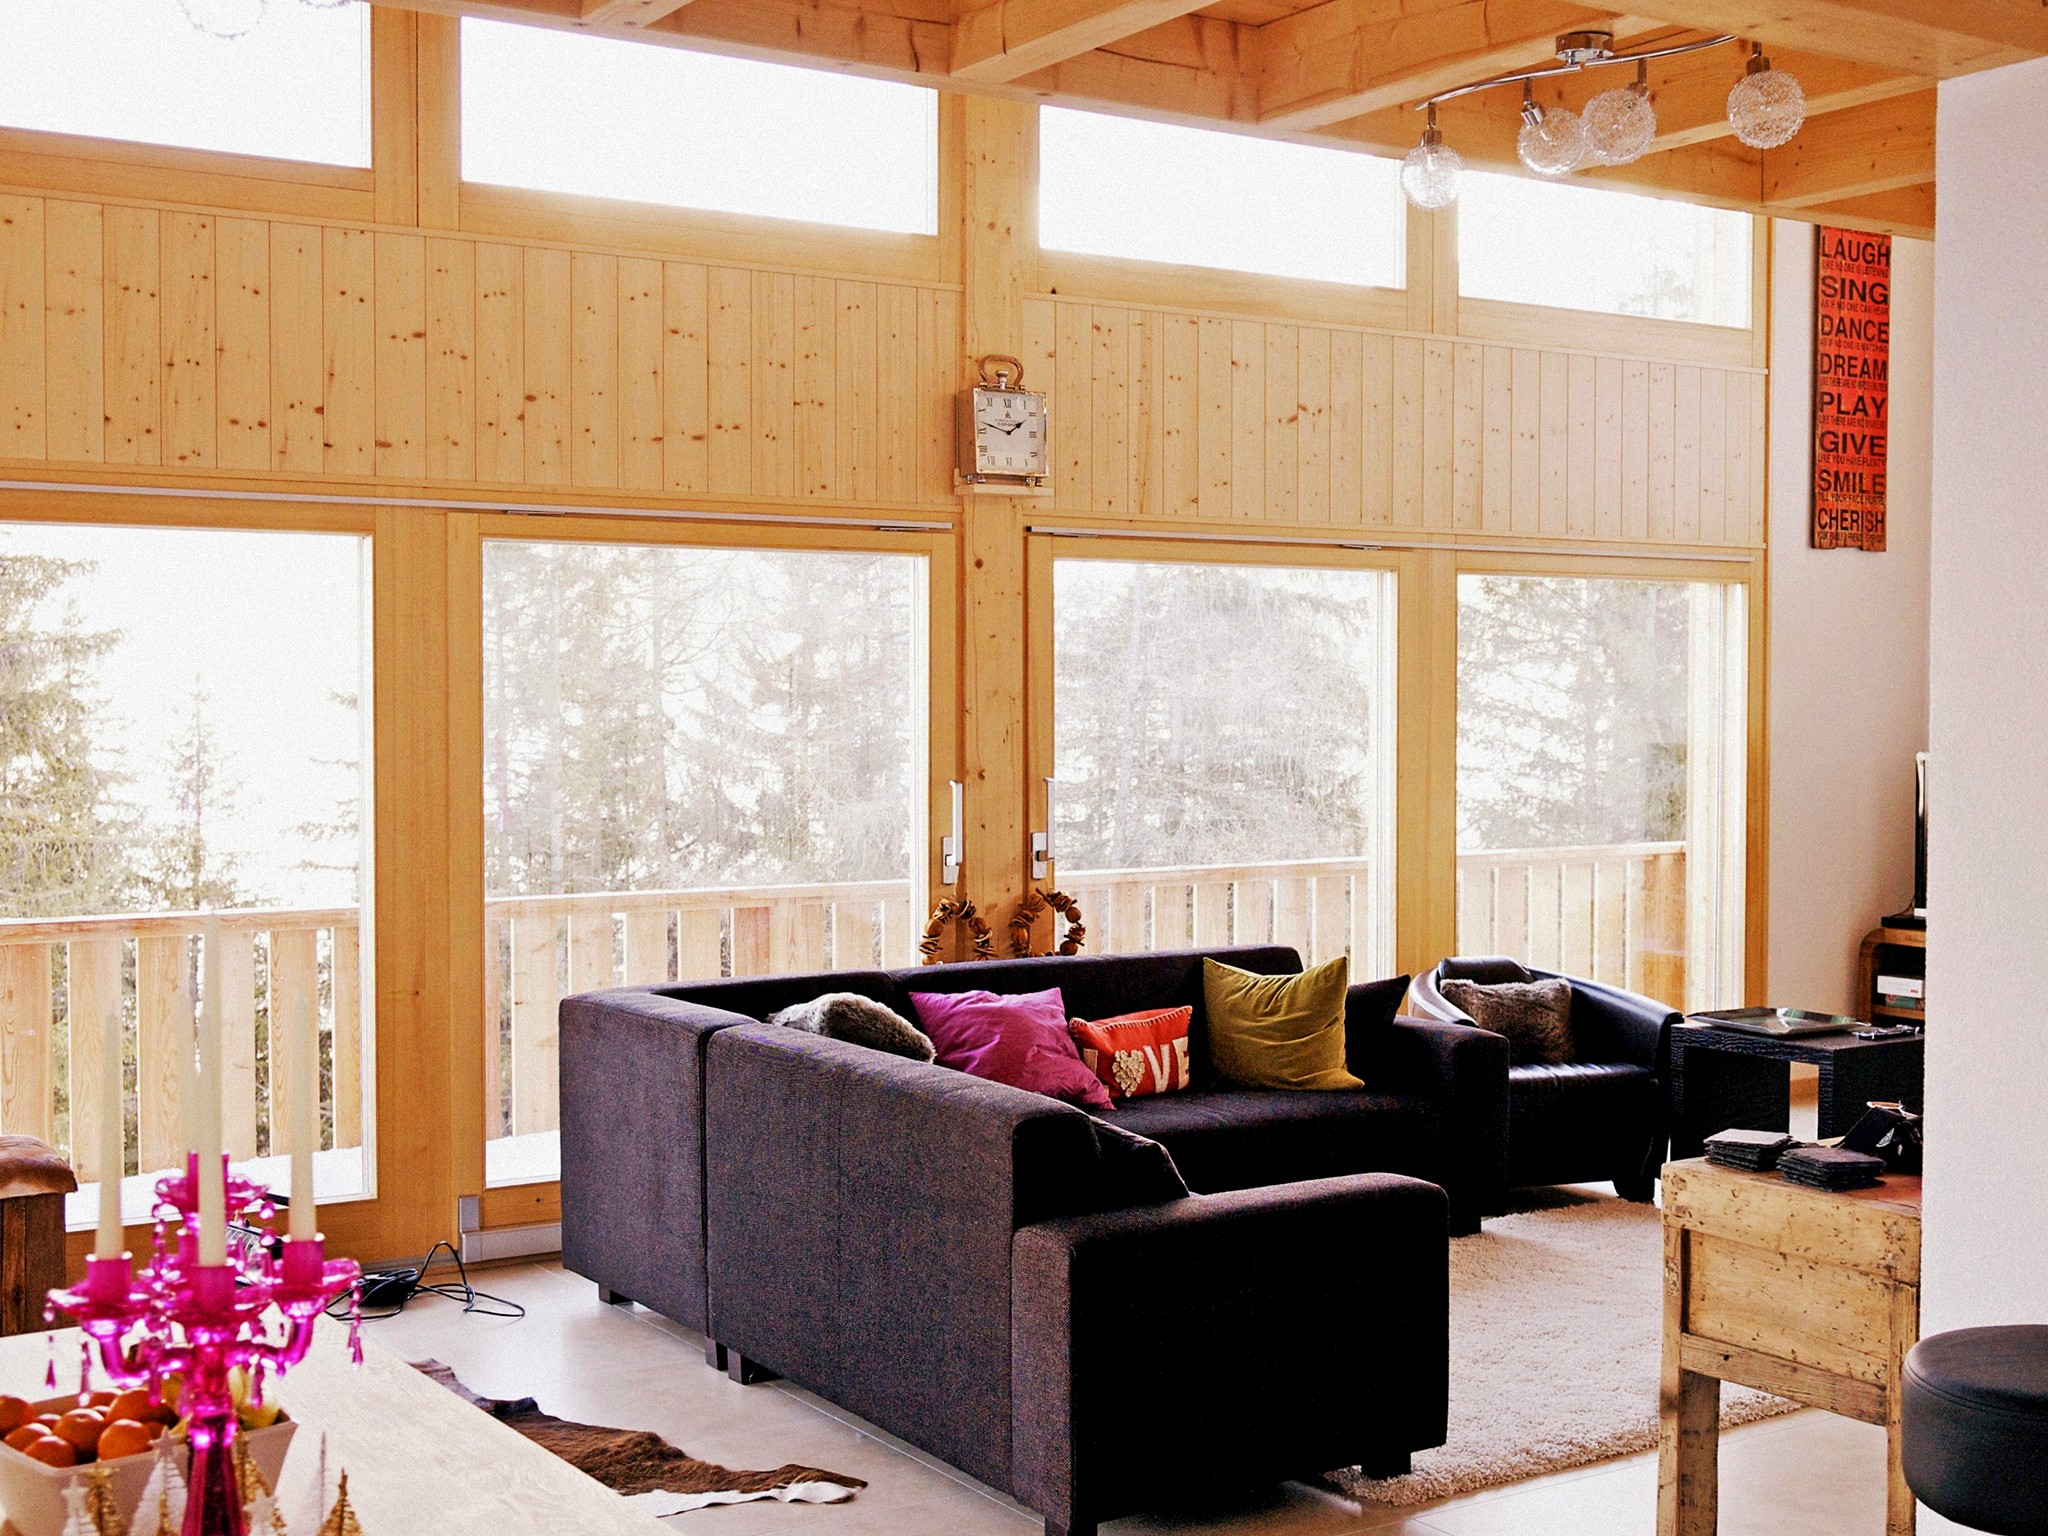 Chalet Chaud - living room